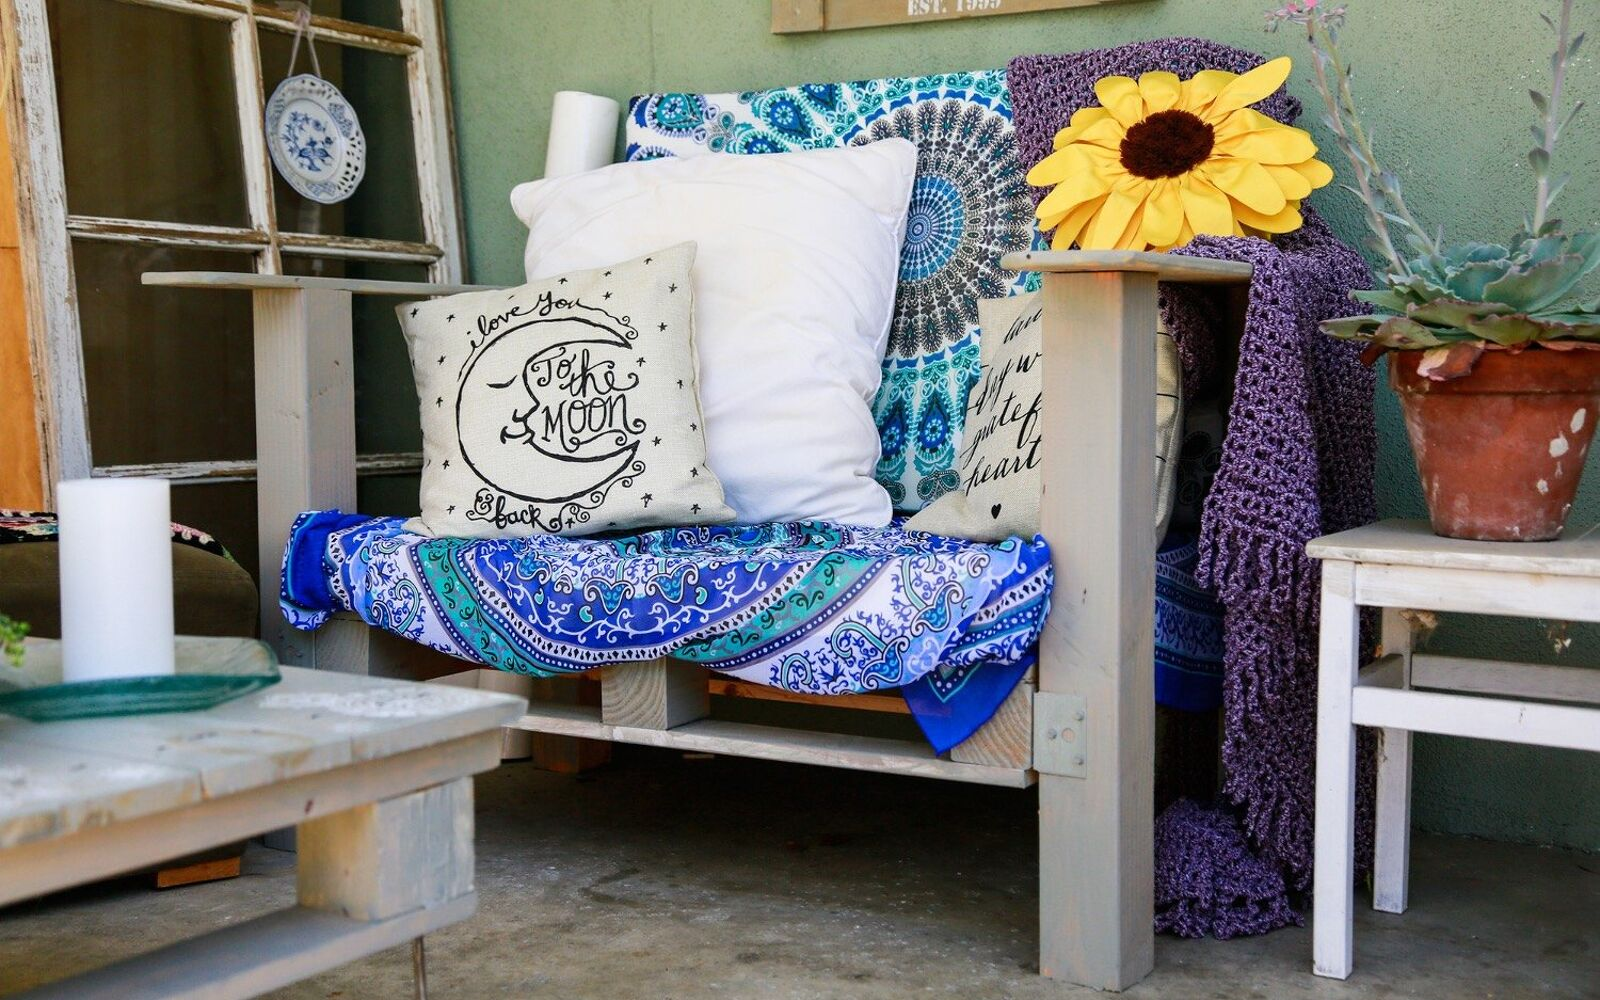 s upgrade your backyard with these 30 clever ideas, Create a peacful meditation spot